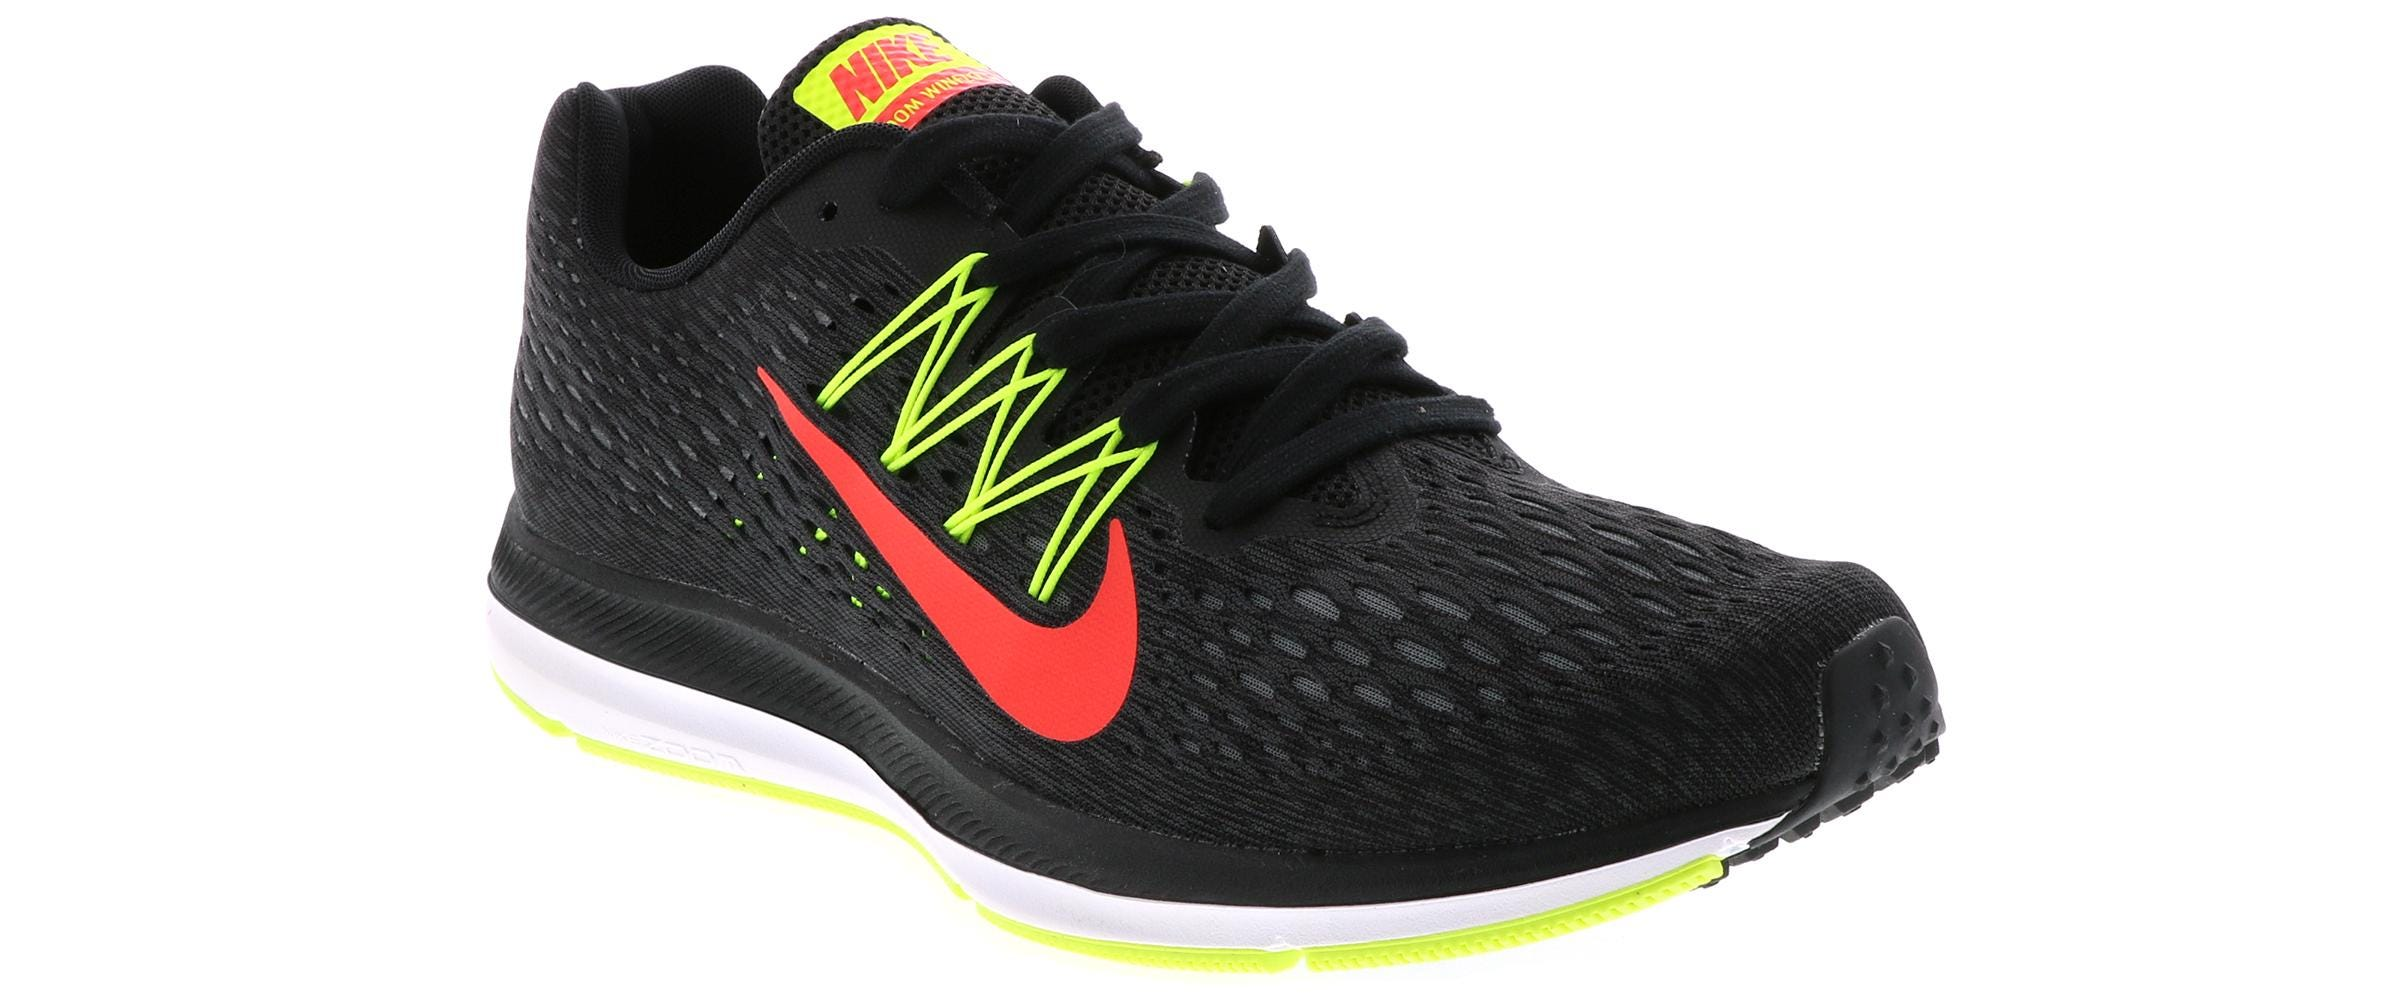 sale retailer a7ea7 48ac0 Men's Nike Air Zoom Winflo 5